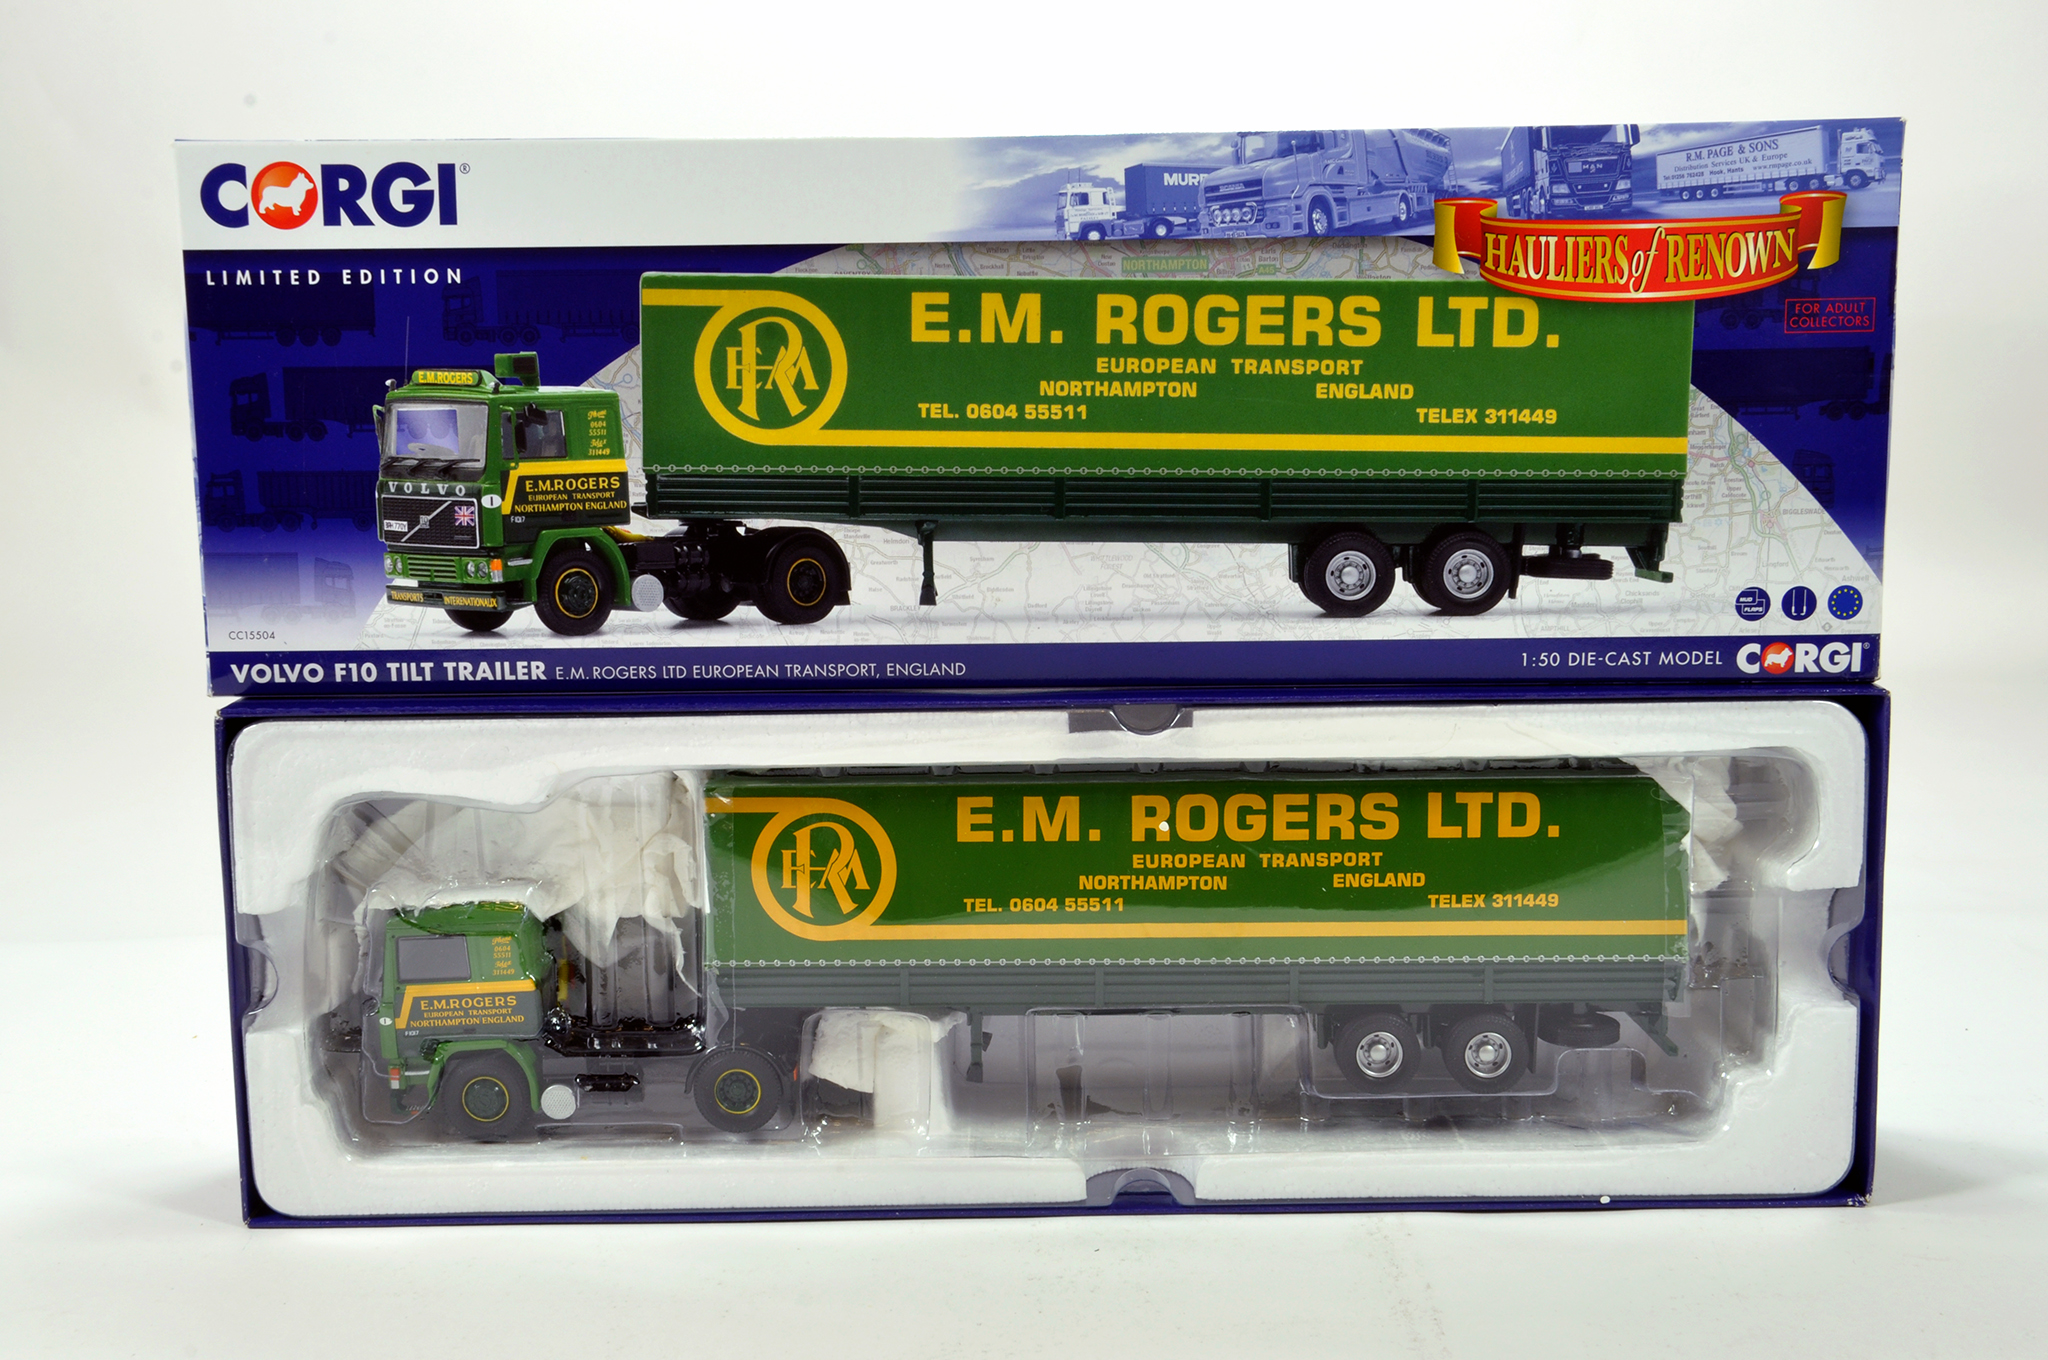 Lot 12 - Corgi 1/50 diecast truck issue comprising No. CC15504 Volvo F10 Tilt Trailer in livery of EM Rogers.